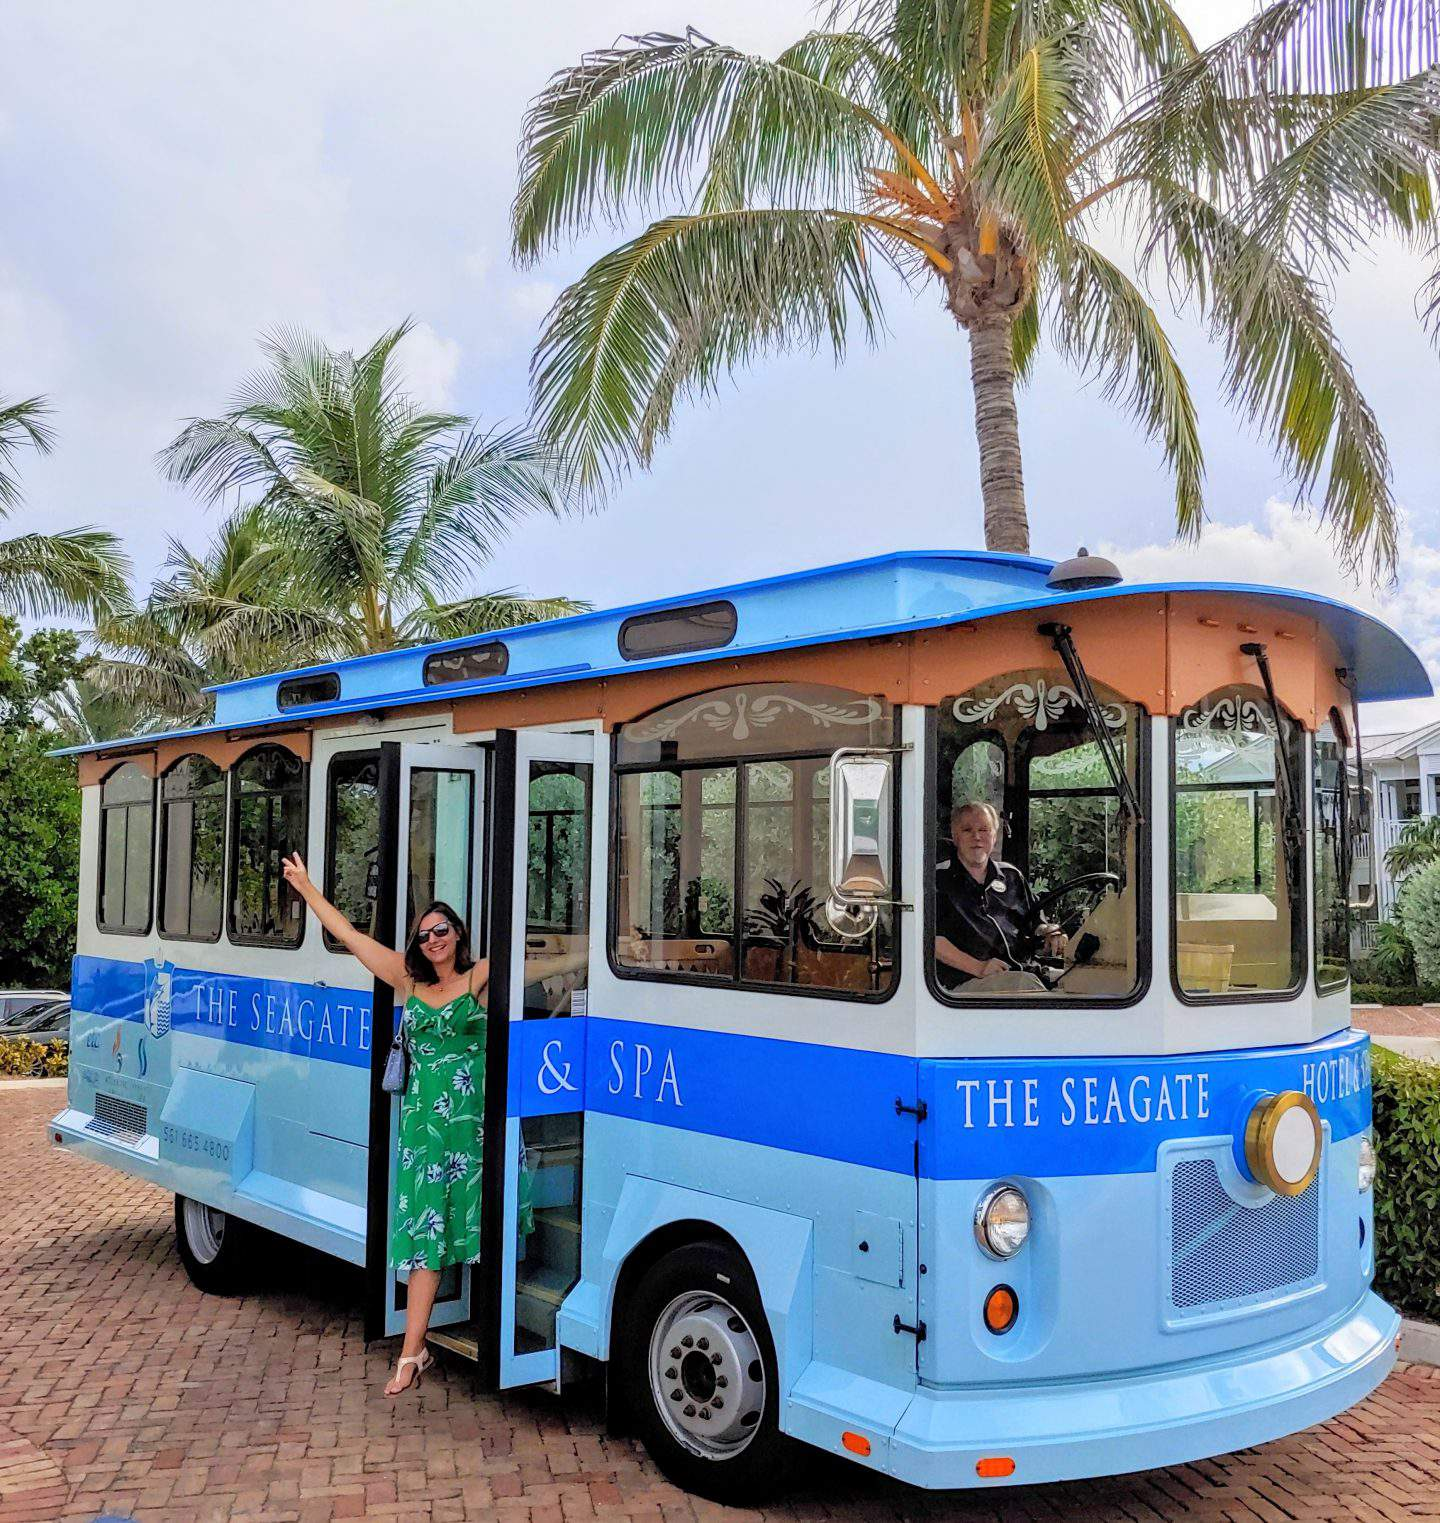 Seagate Hotel and Spa Shuttle